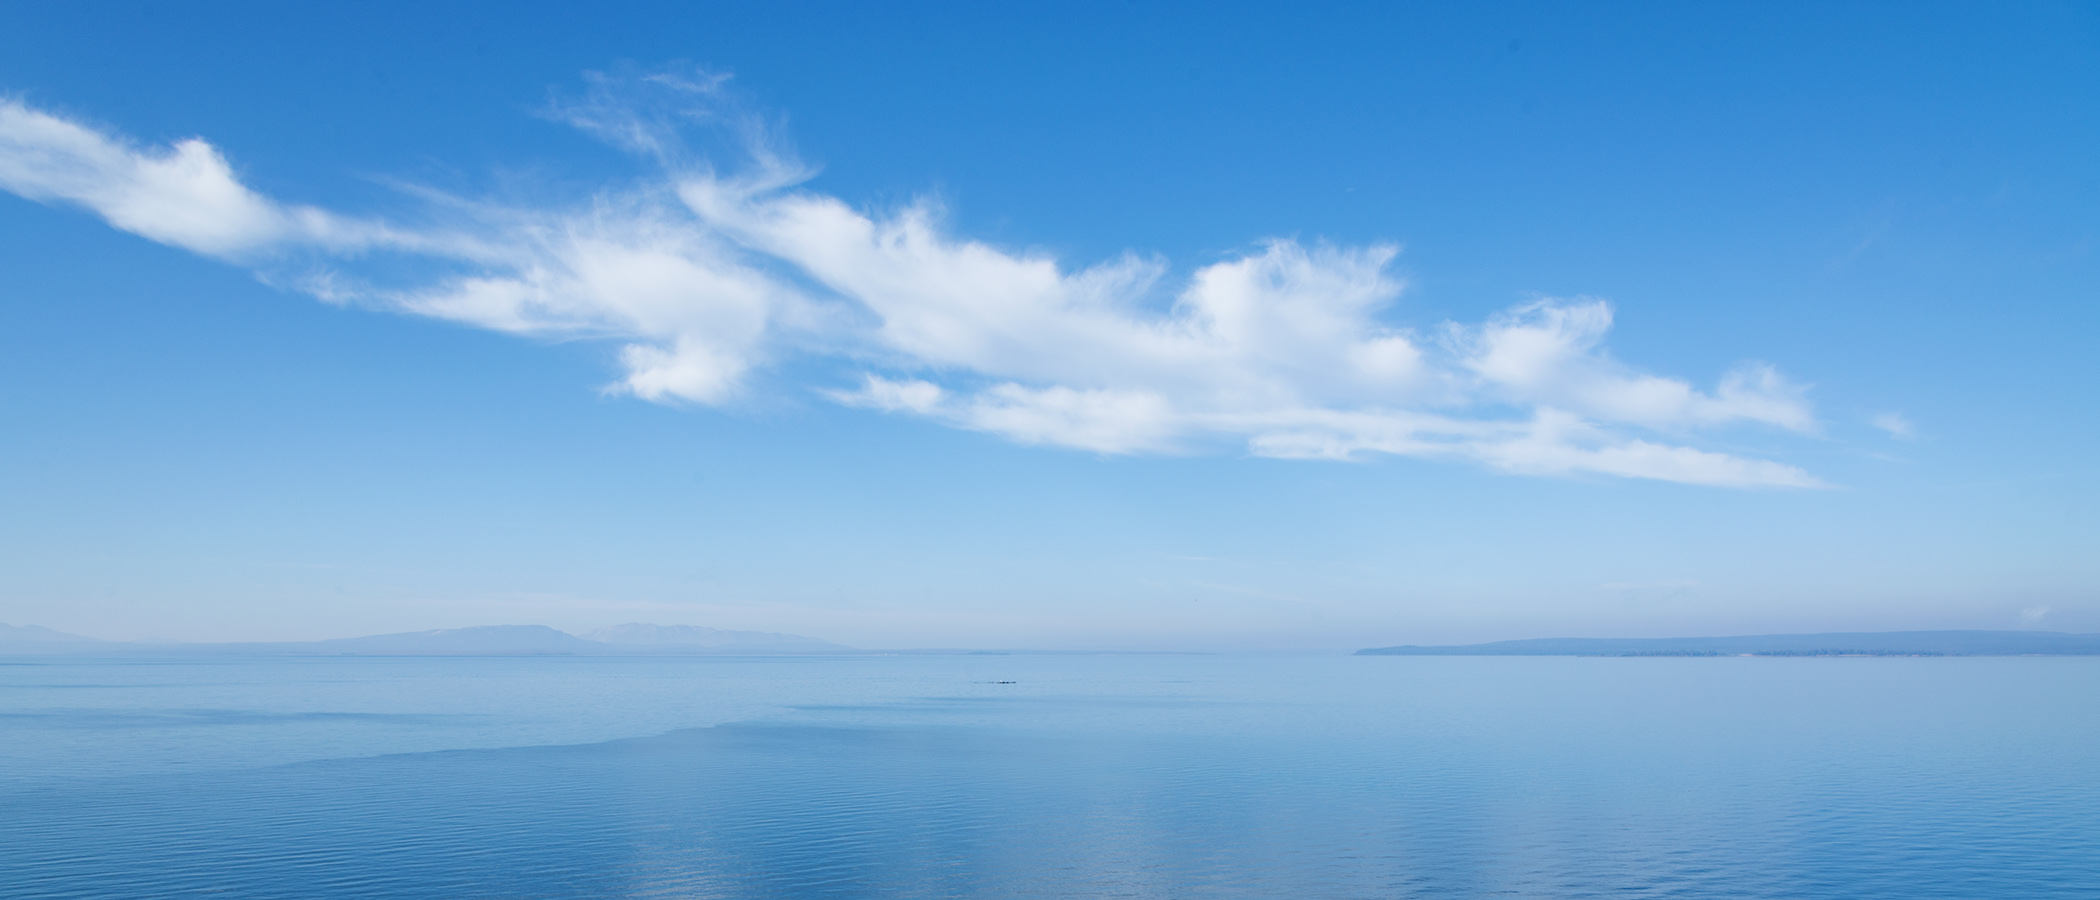 The morning sky from the east side of Yellowstone Lake.